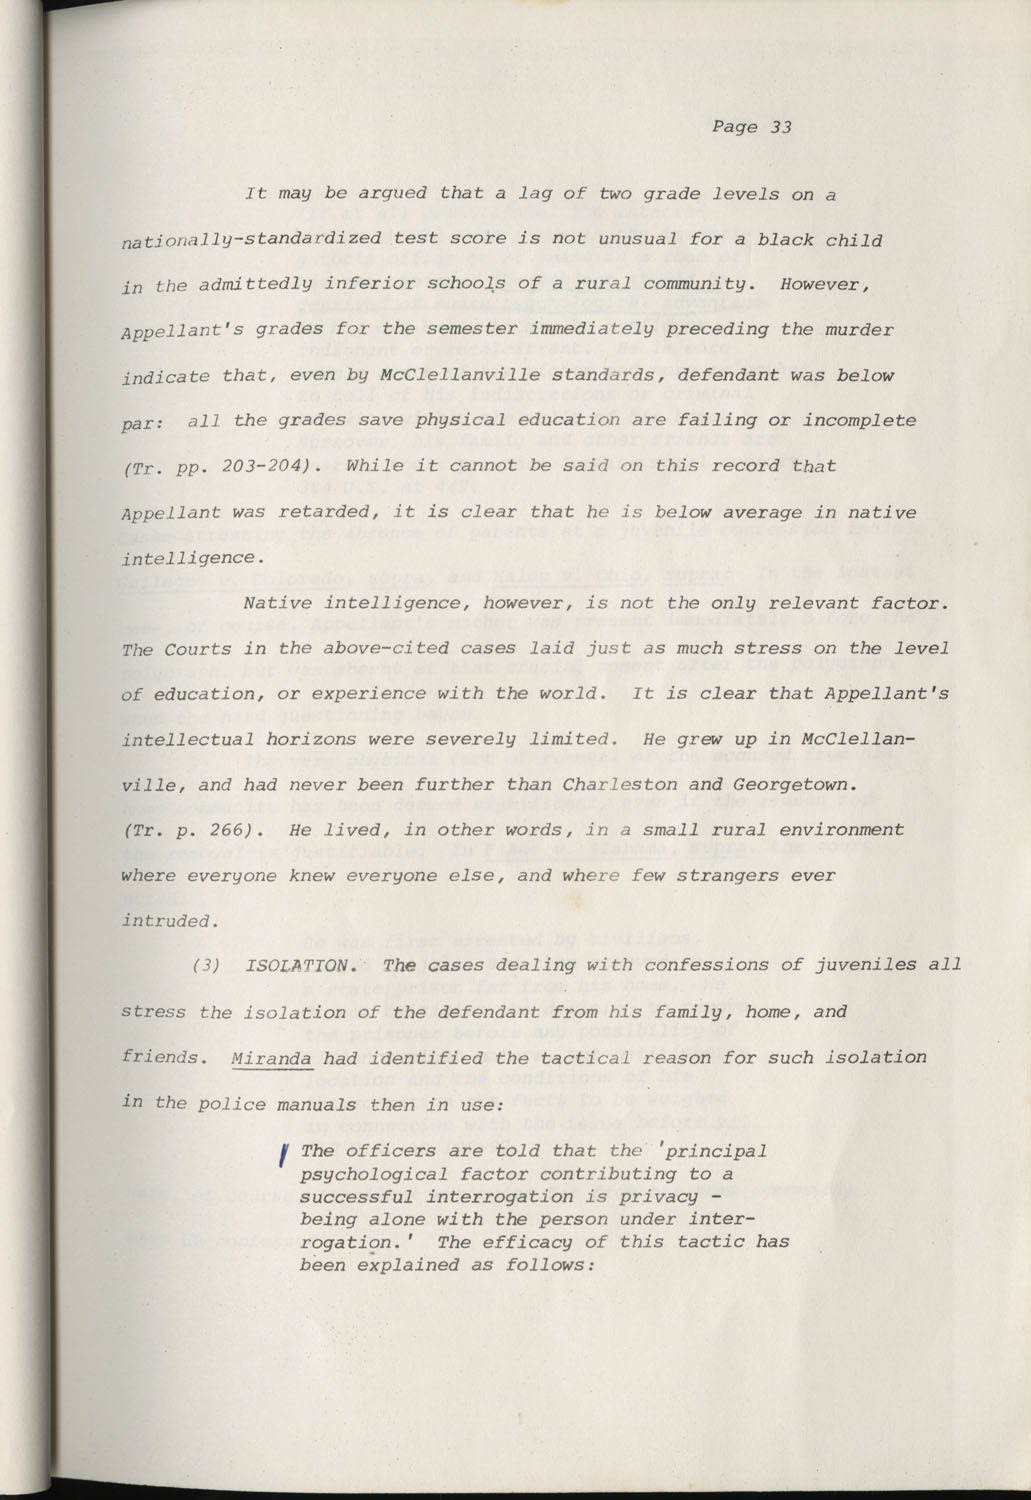 State of South Carolina vs. Robert Lee Smith, Brief of Appellant, Page 33